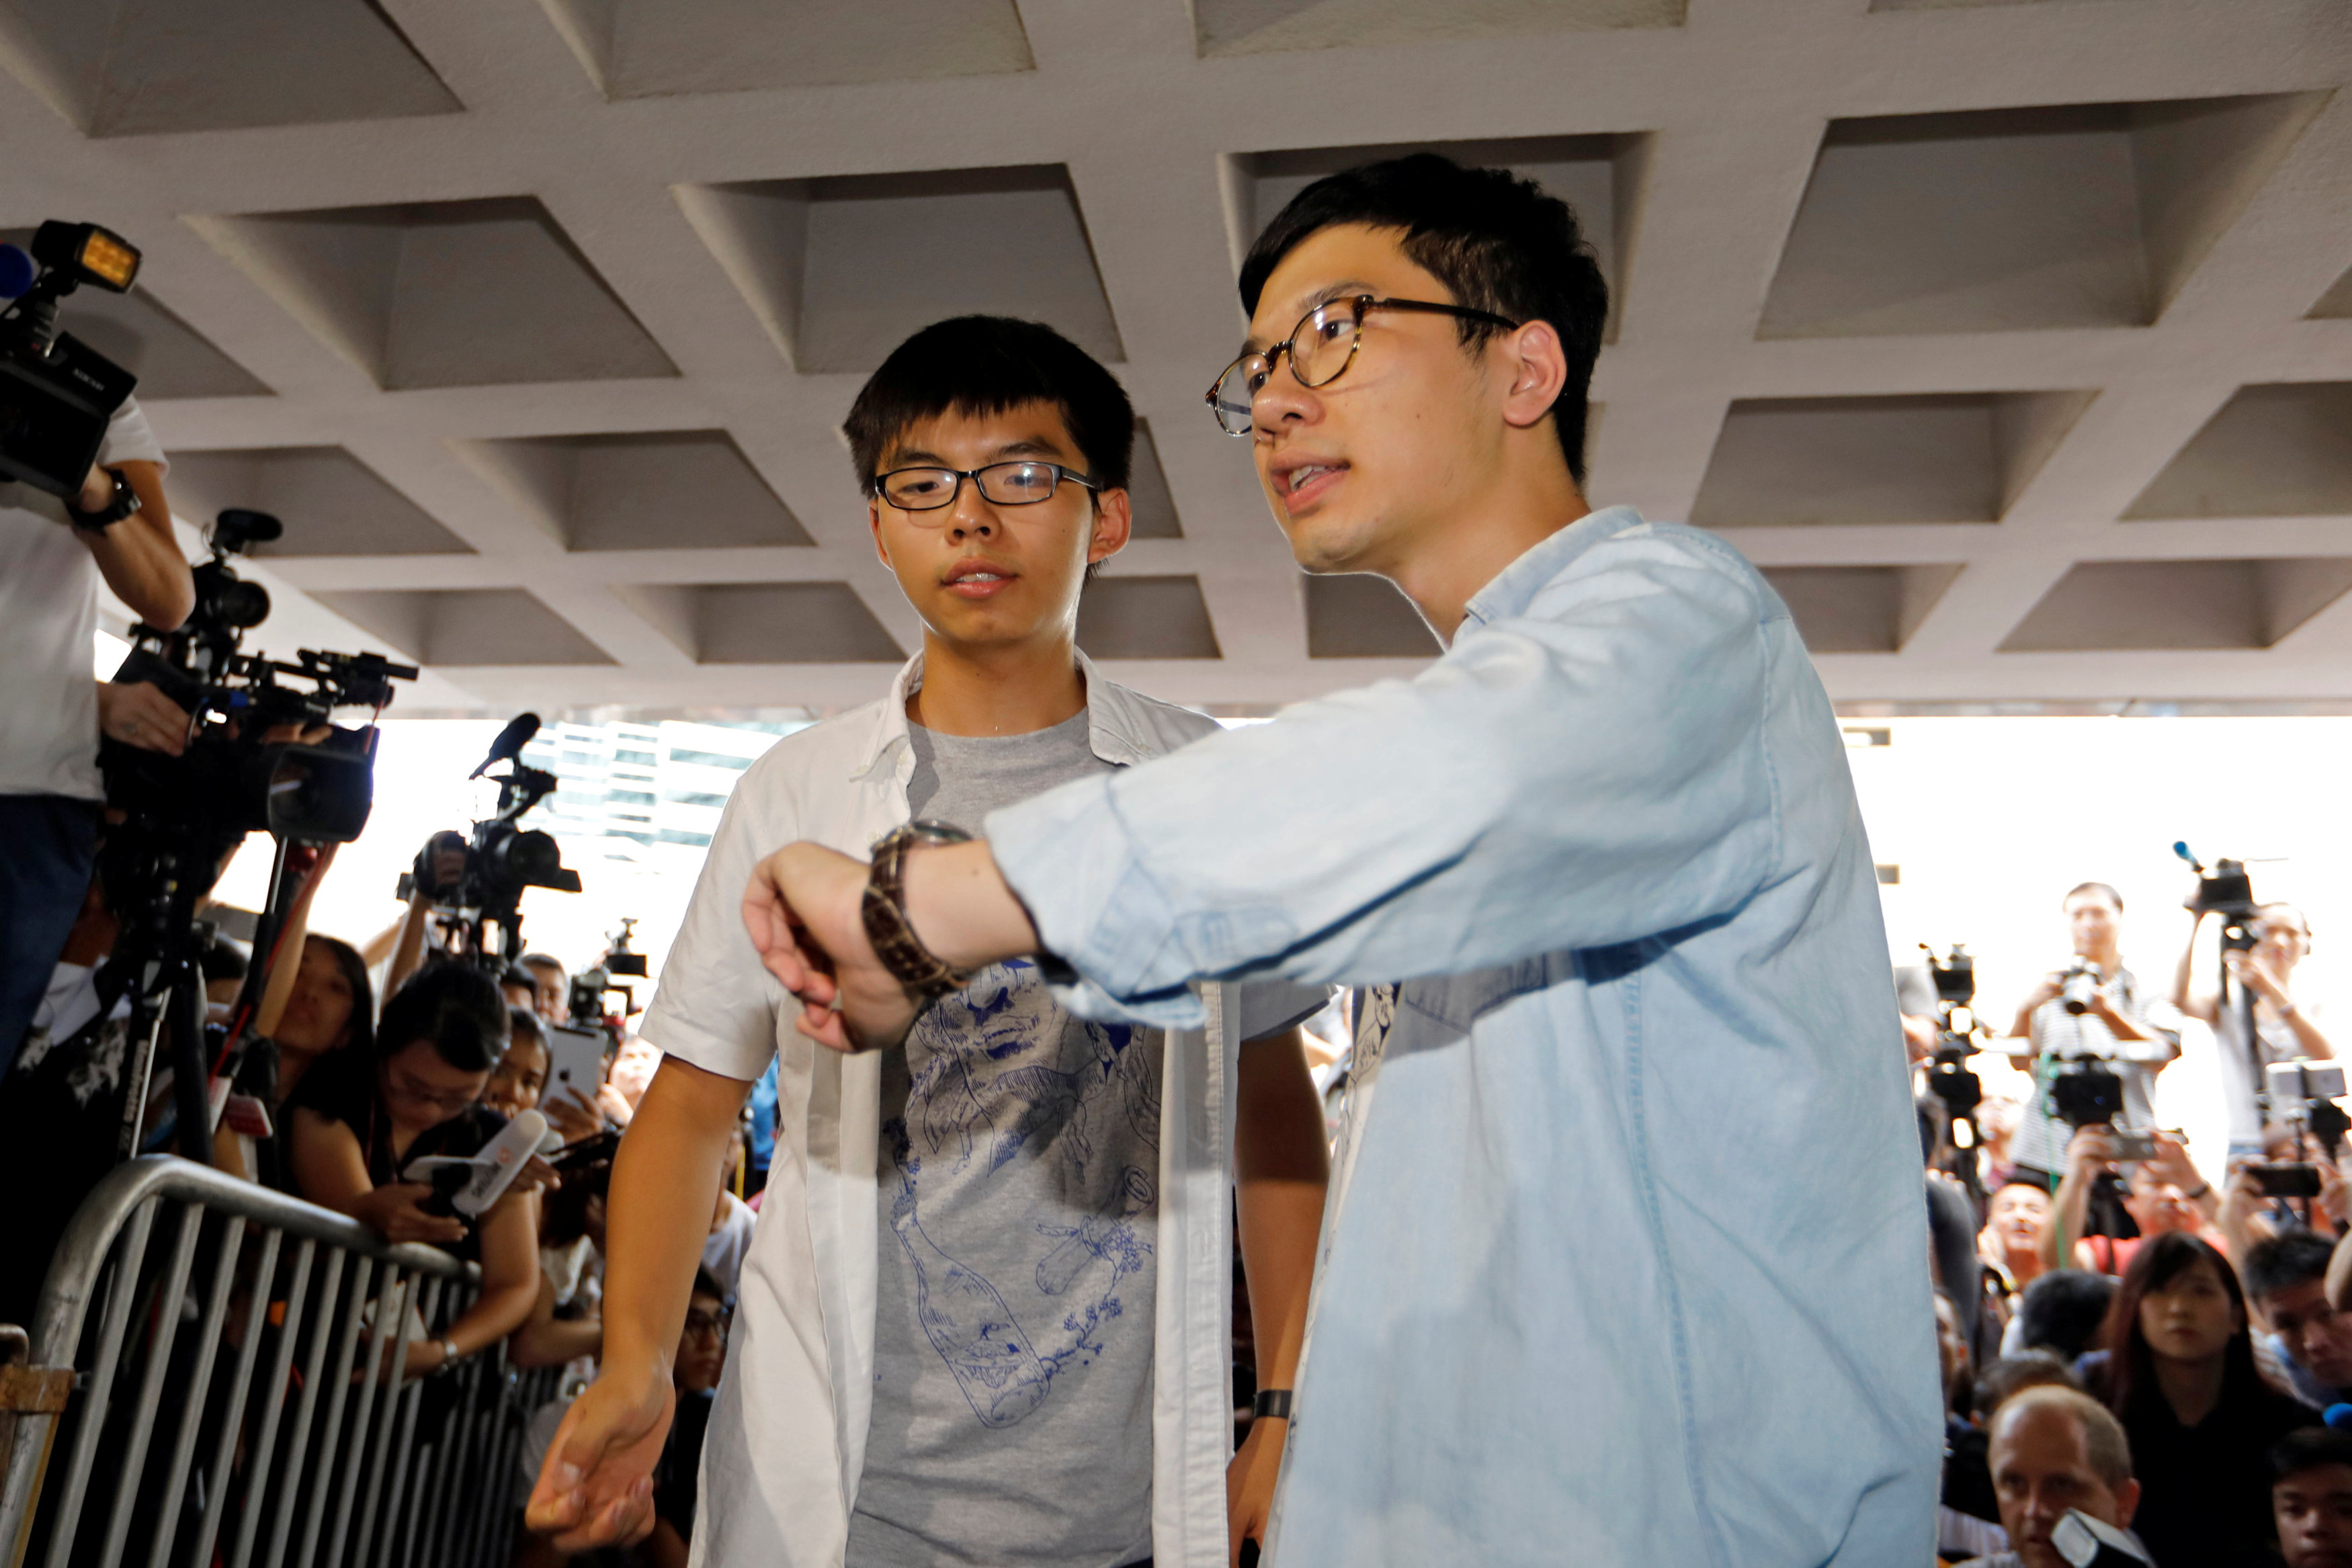 Student leaders Joshua Wong and Nathan Law arrive at the High Court to face verdict on charges relating to the 2014 pro-democracy Umbrella Movement, also known as Occupy Central protests, in Hong Kong, China on August 17, 2017. (REUTERS/Tyrone Siu)